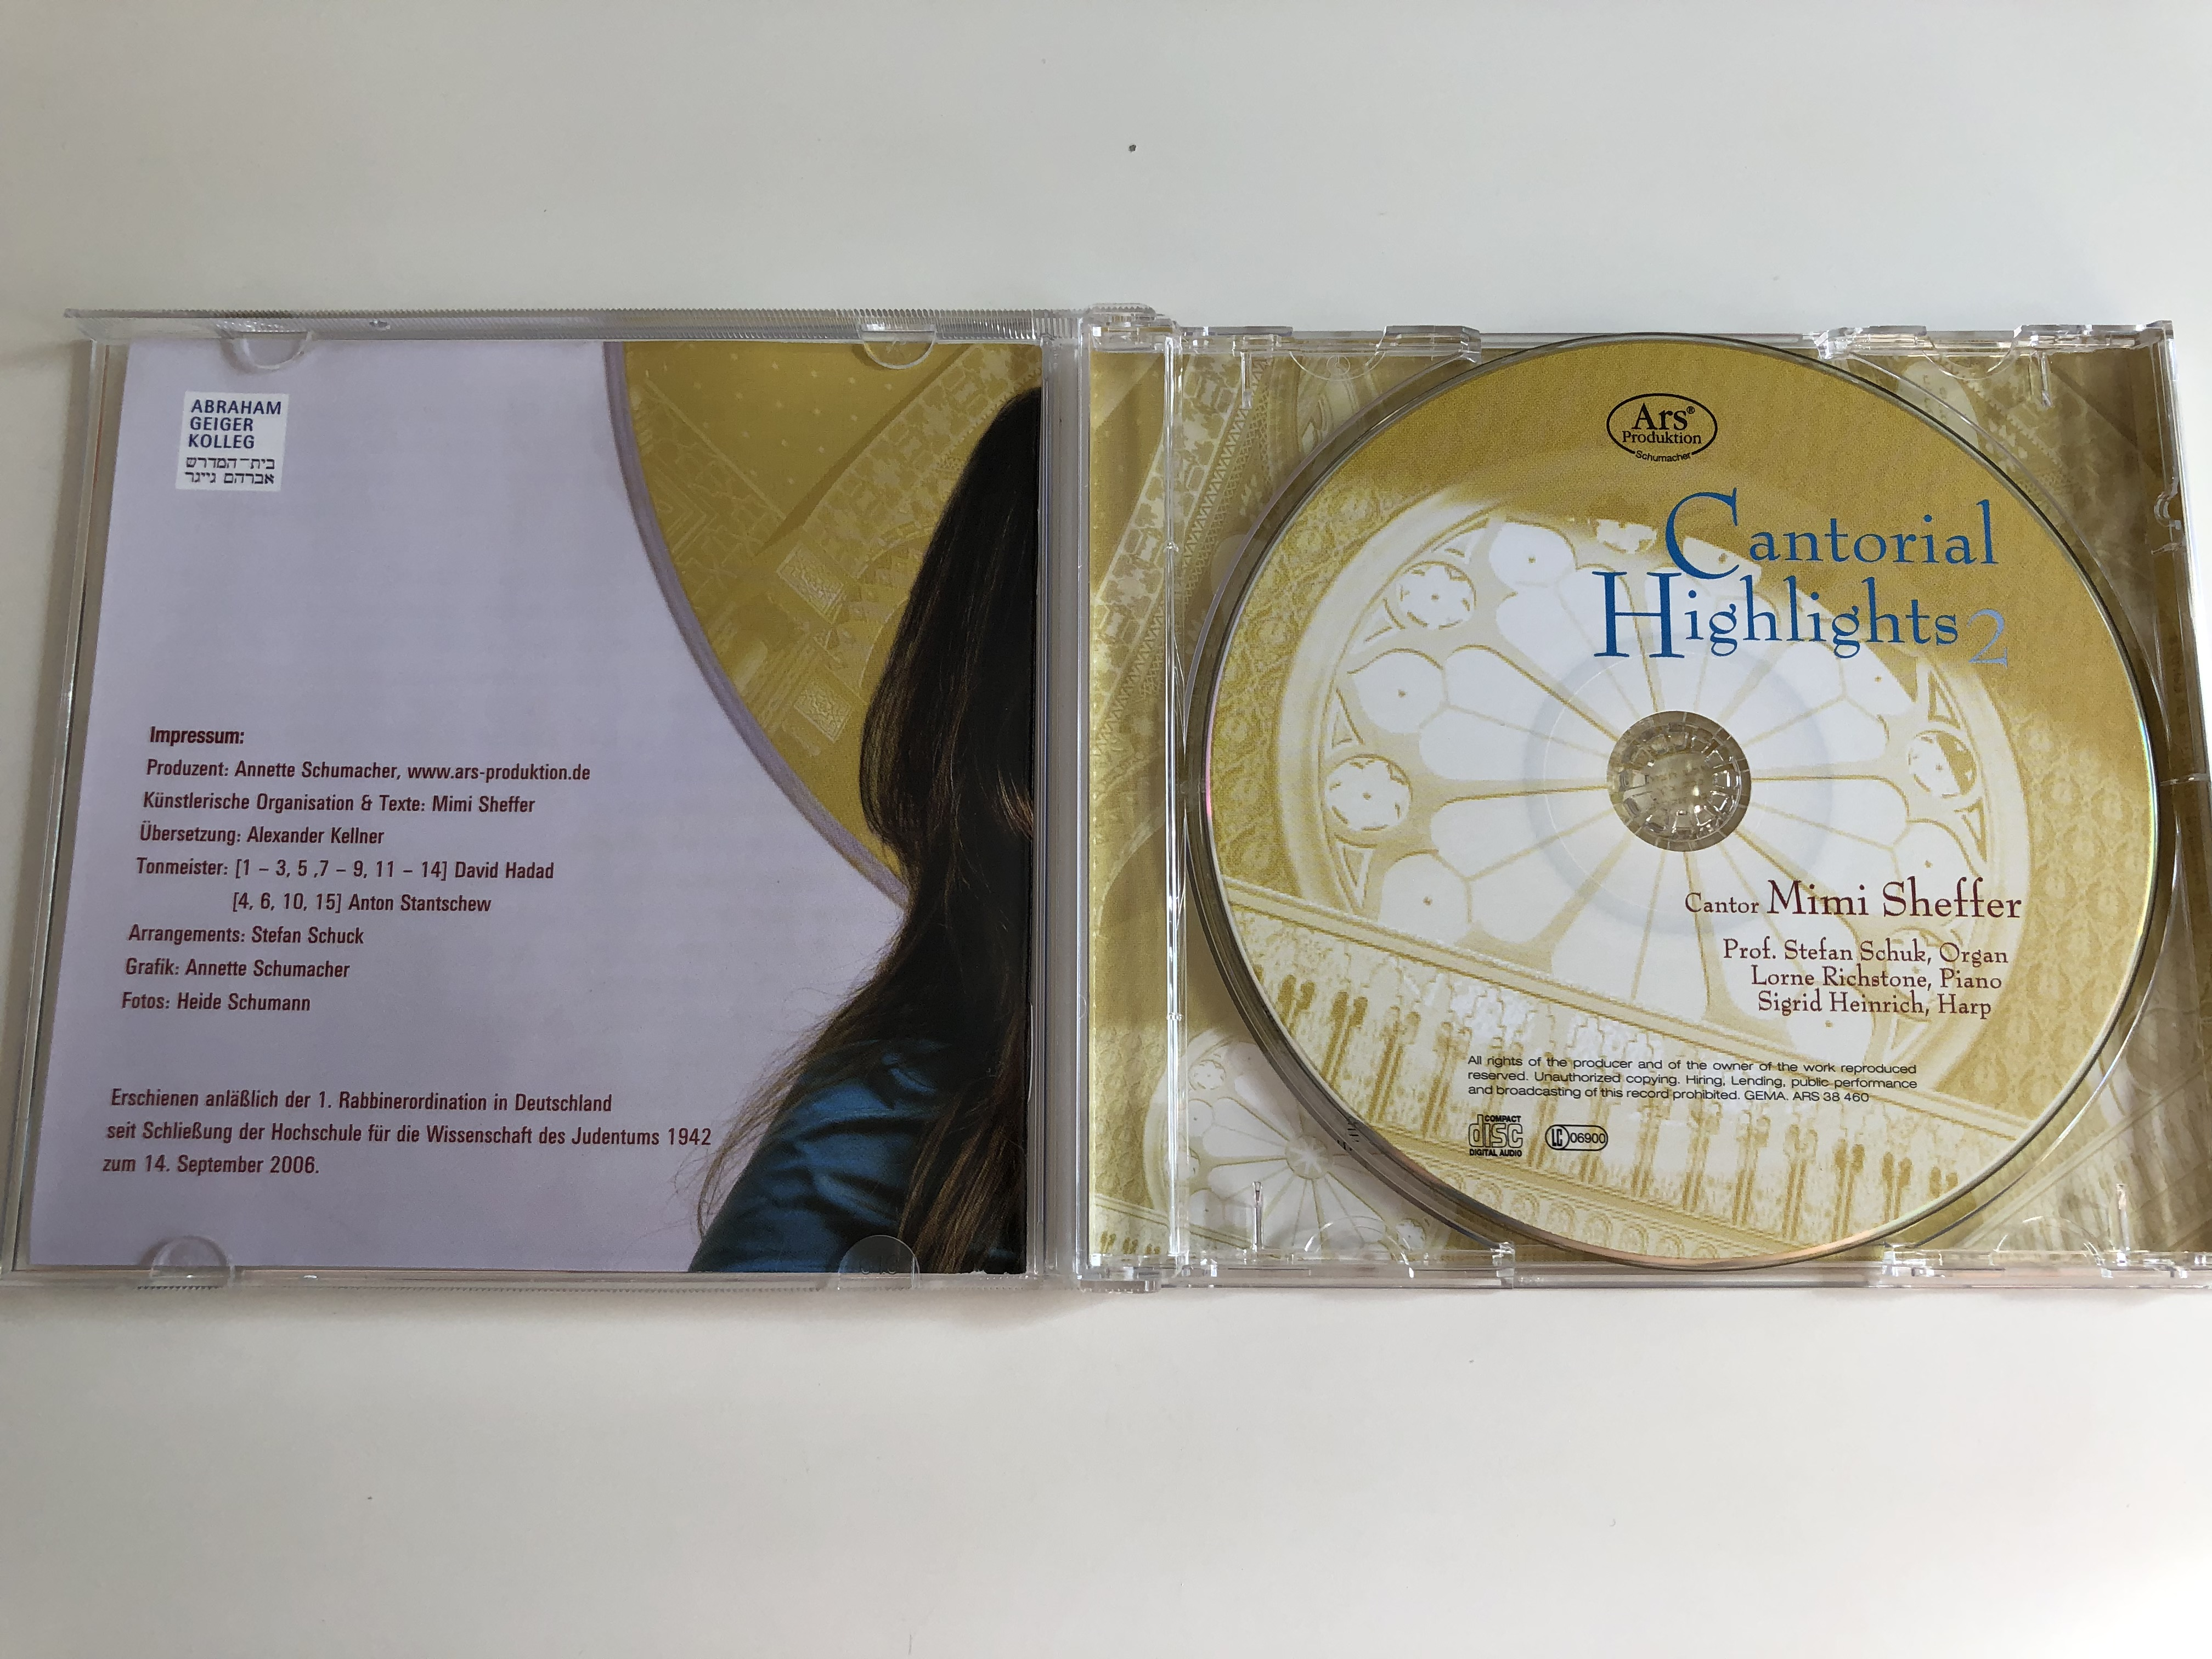 cantorial-highlights-2-revival-of-synagogue-music-in-europe-cantor-mimi-sheffer-sings-with-prof.-stefan-schuk-organ-lorne-richstone-piano-sigrid-heinrich-harp-audio-cd-2006-11-.jpg